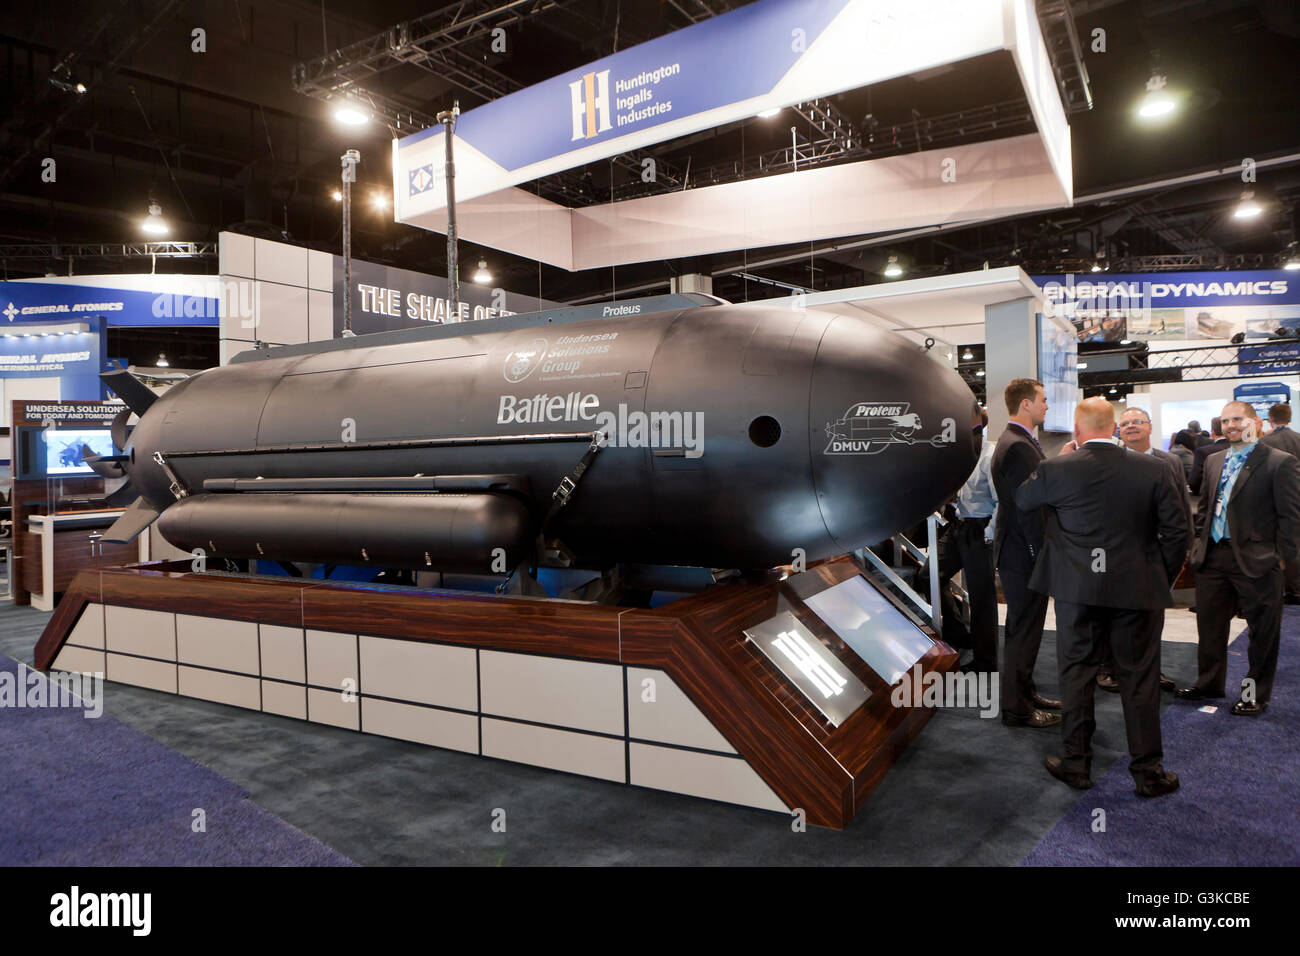 Proteus undersea vehicle made by Undersea Solutions Group, Huntington Ingalls display at US Navy League Sea-Air - Stock Image